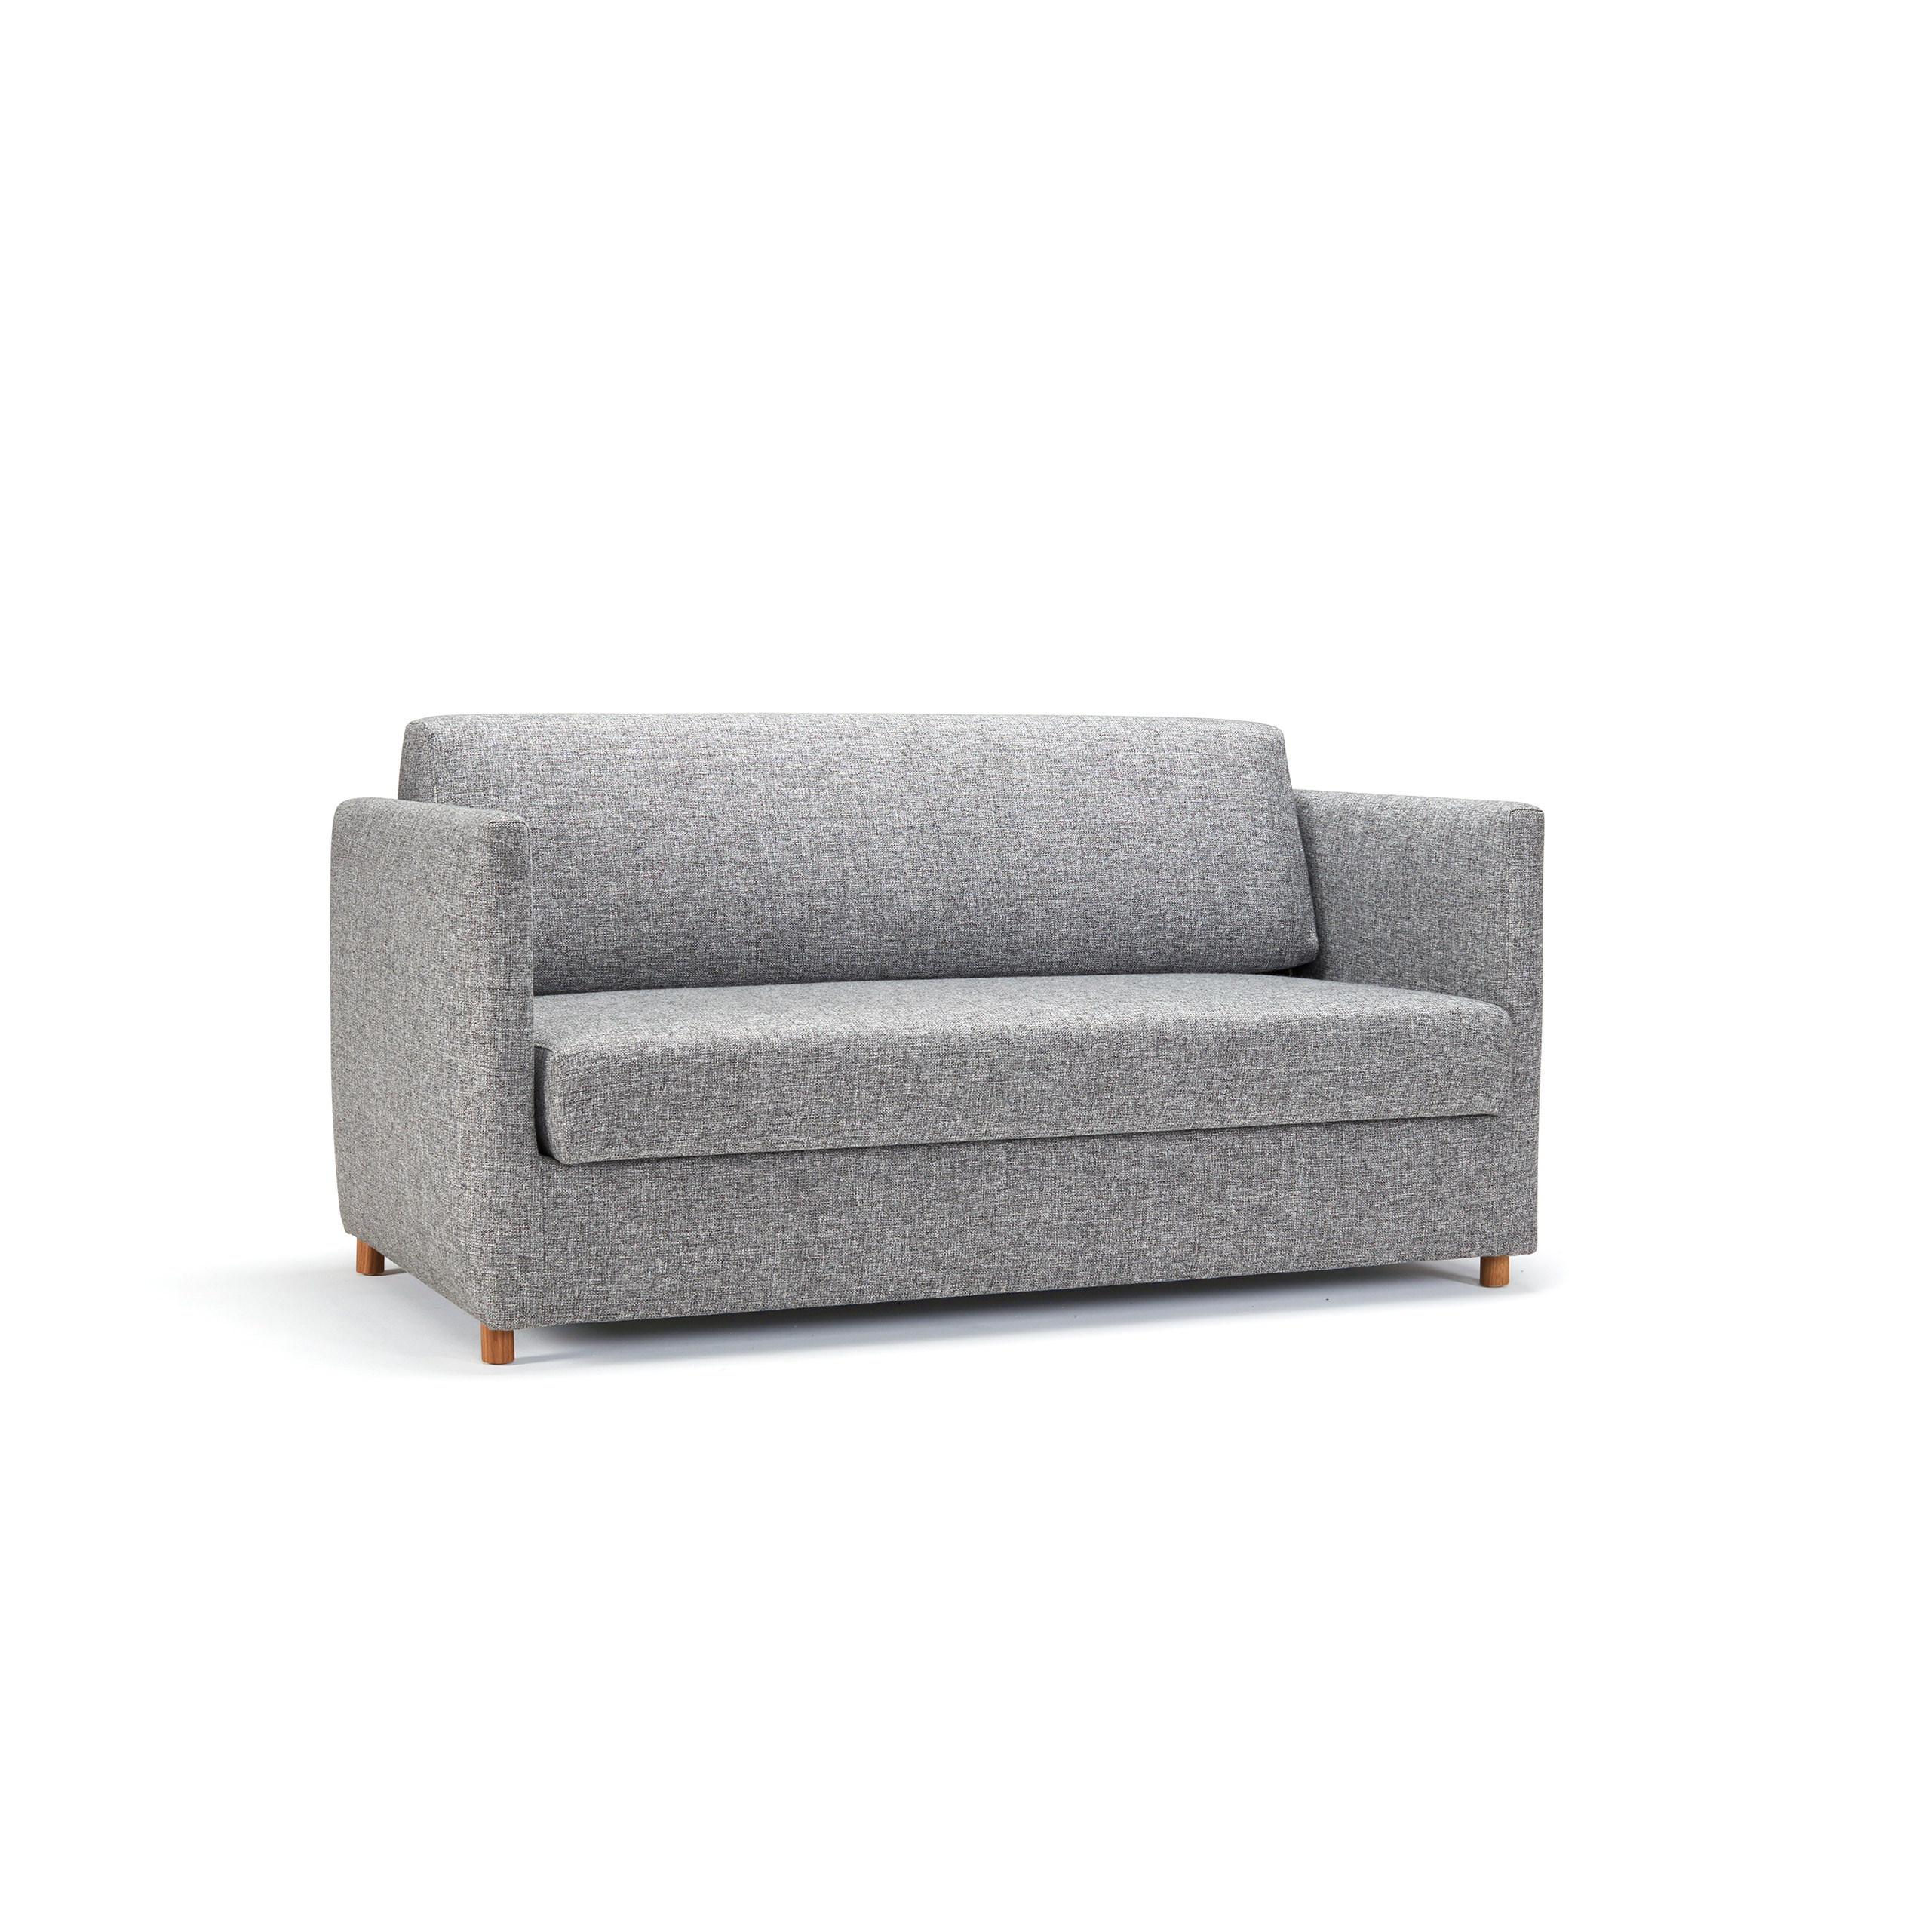 Olan Sofa Bed Absolute Compact